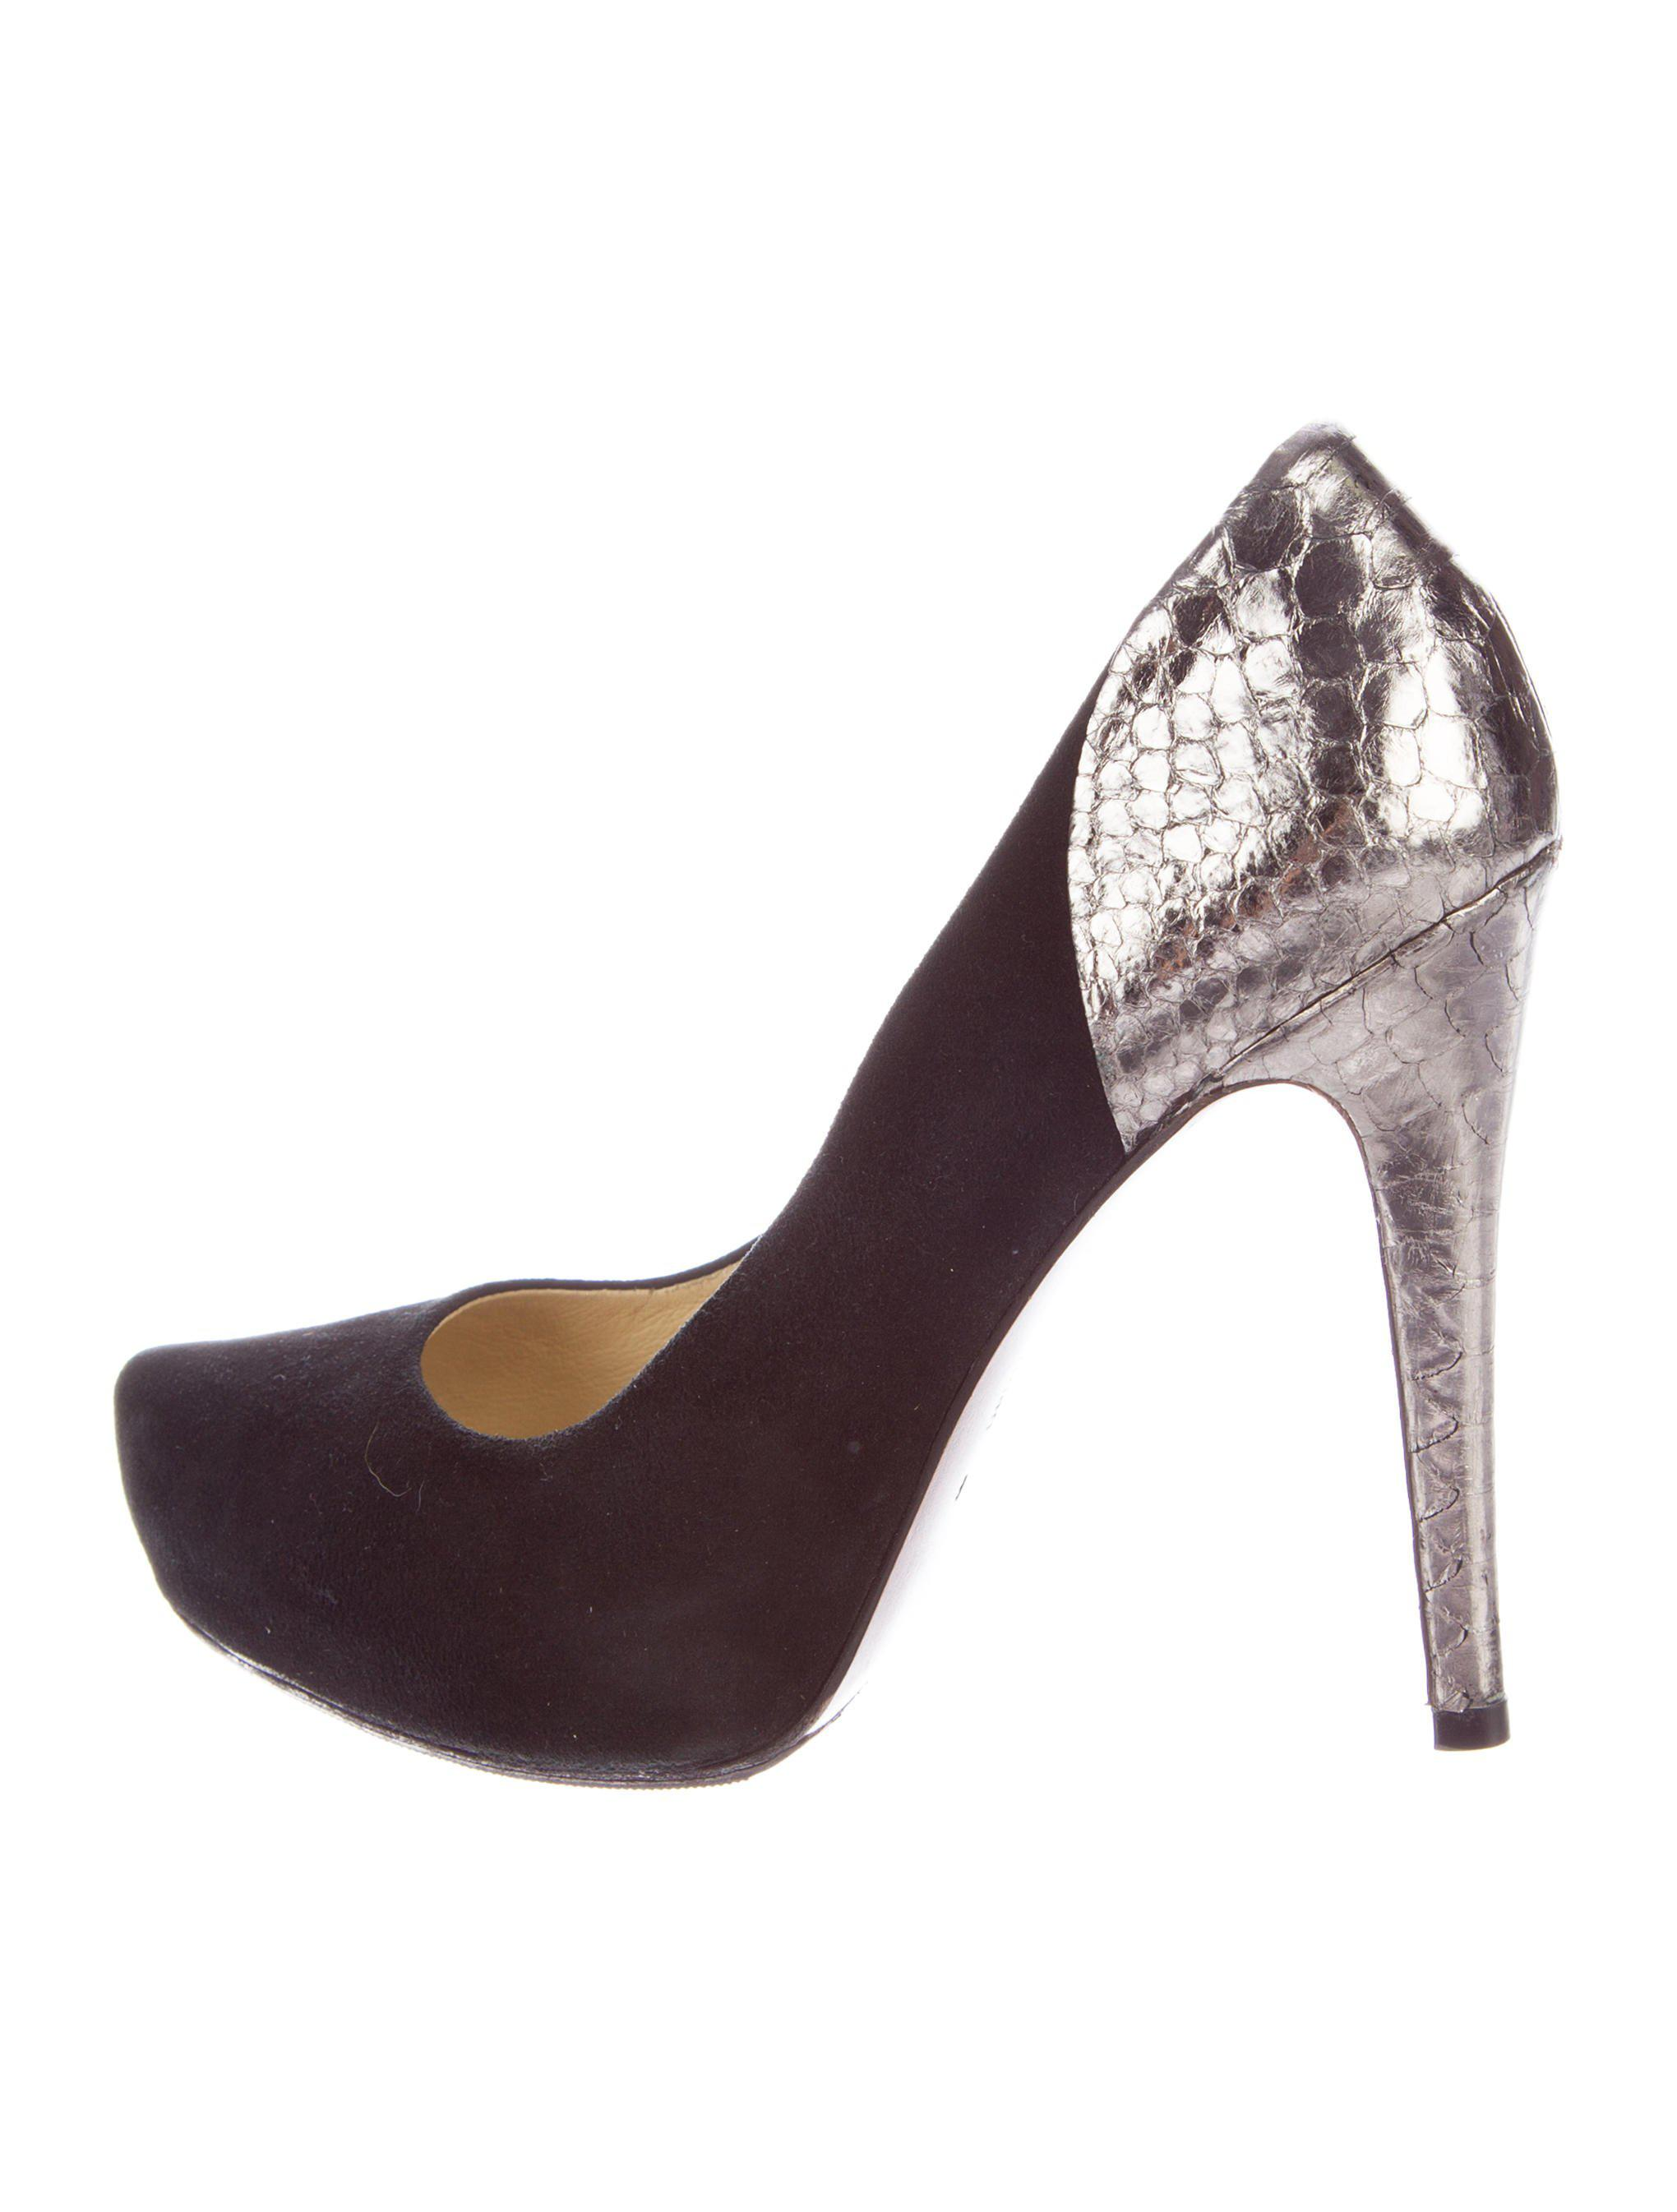 order Alexandre Birman Suede Pointed-Toe Pumps free shipping the cheapest idpqf